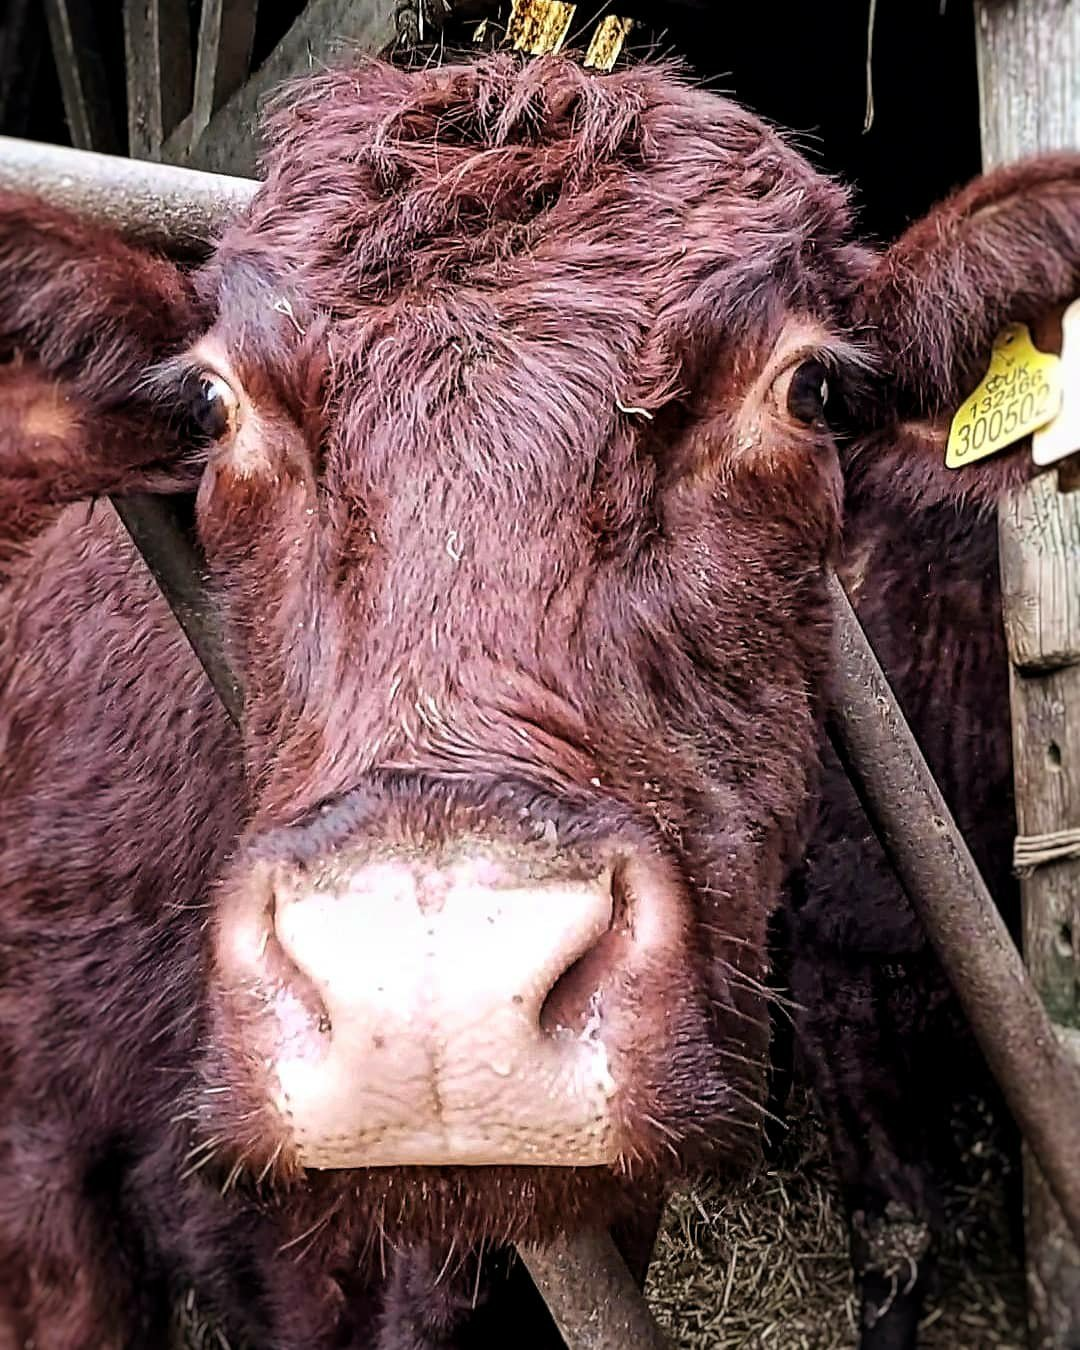 Close up of a brown, Lincoln red cow's head, with large brown eyes and long eyelashes.